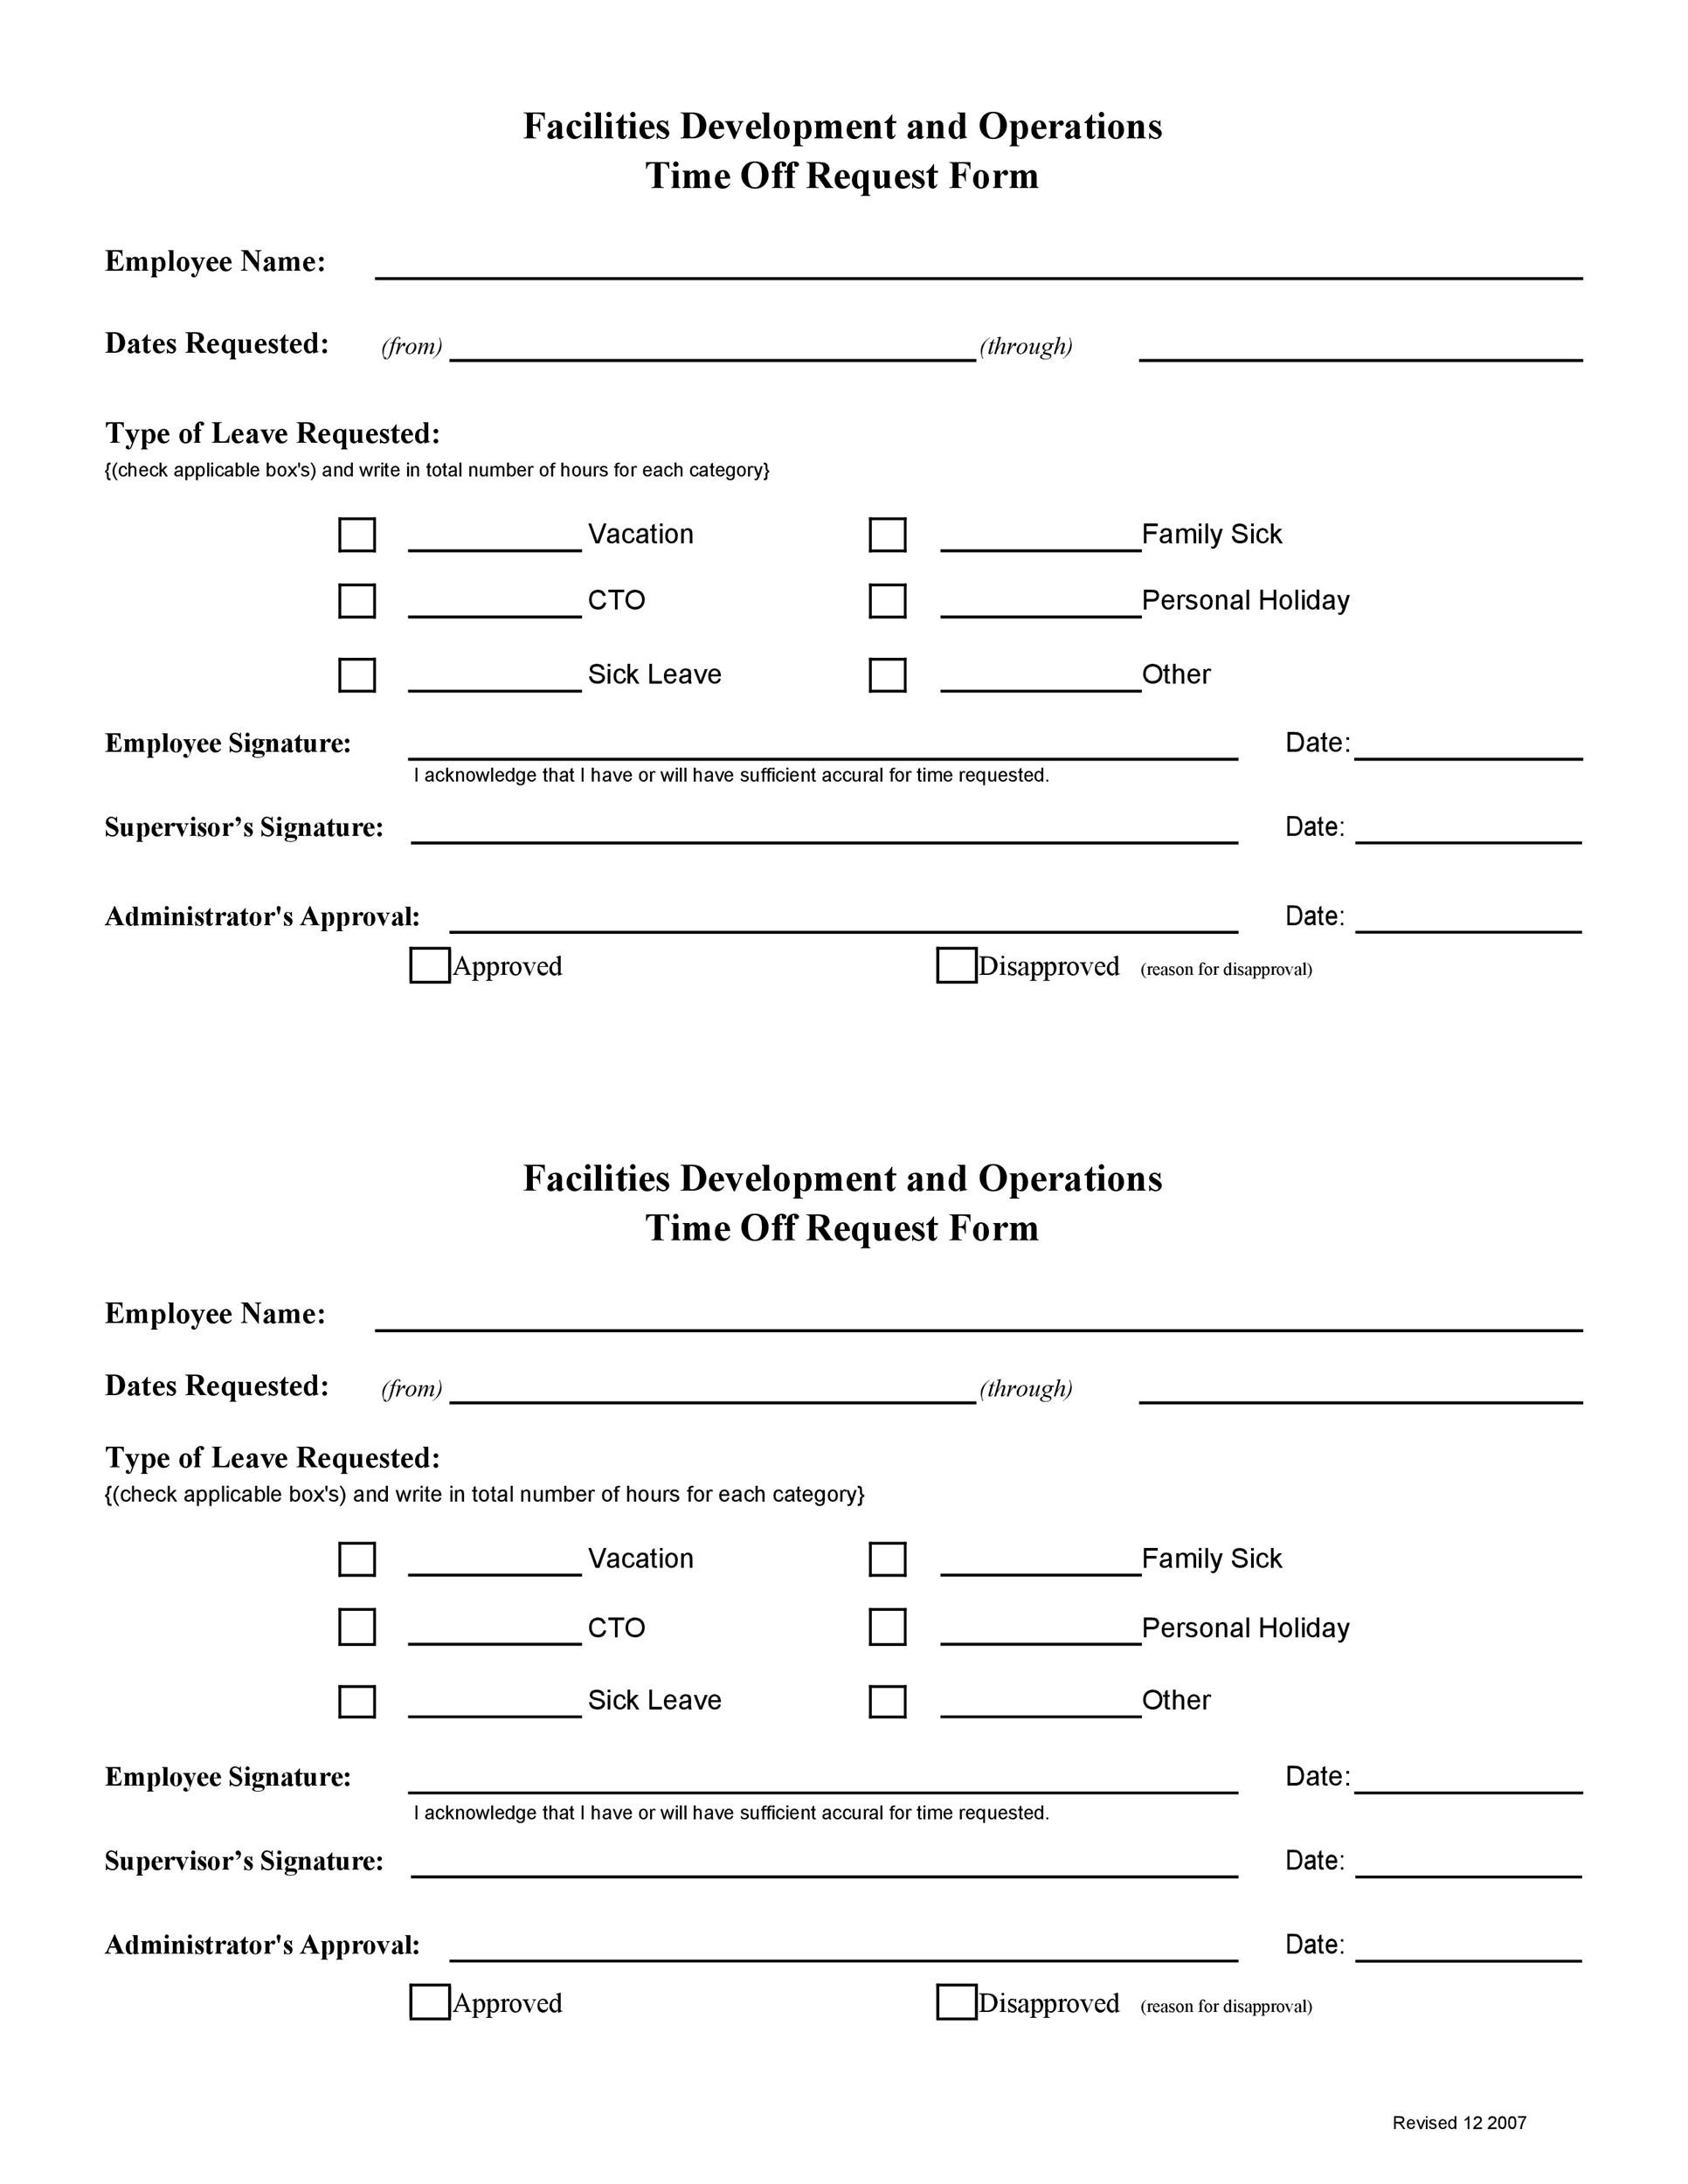 Tactueux image in free printable time off request forms